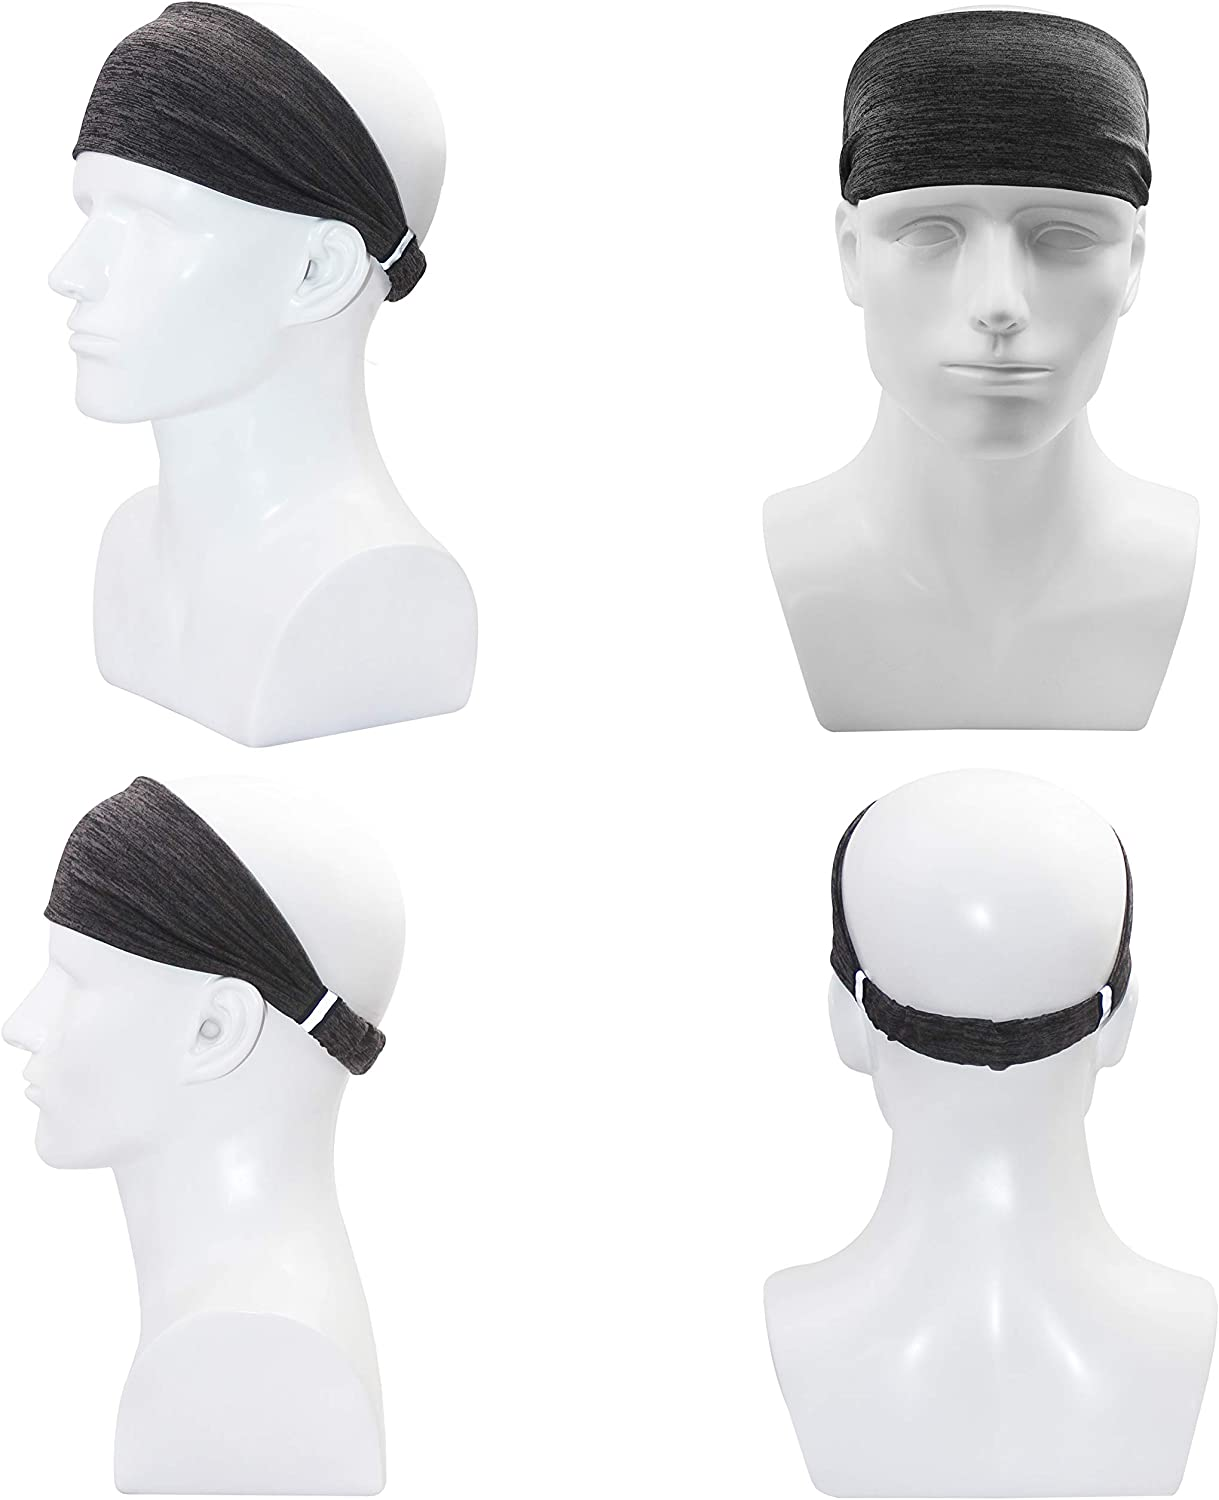 Obacle Headbands for Men Women Workout Sweat Bands Headbands Non Slip Moisture Wicking Sweatbands Reflective for Outdoor Sports Running Yoga Fitness Gym Jogging Exercise Cycling